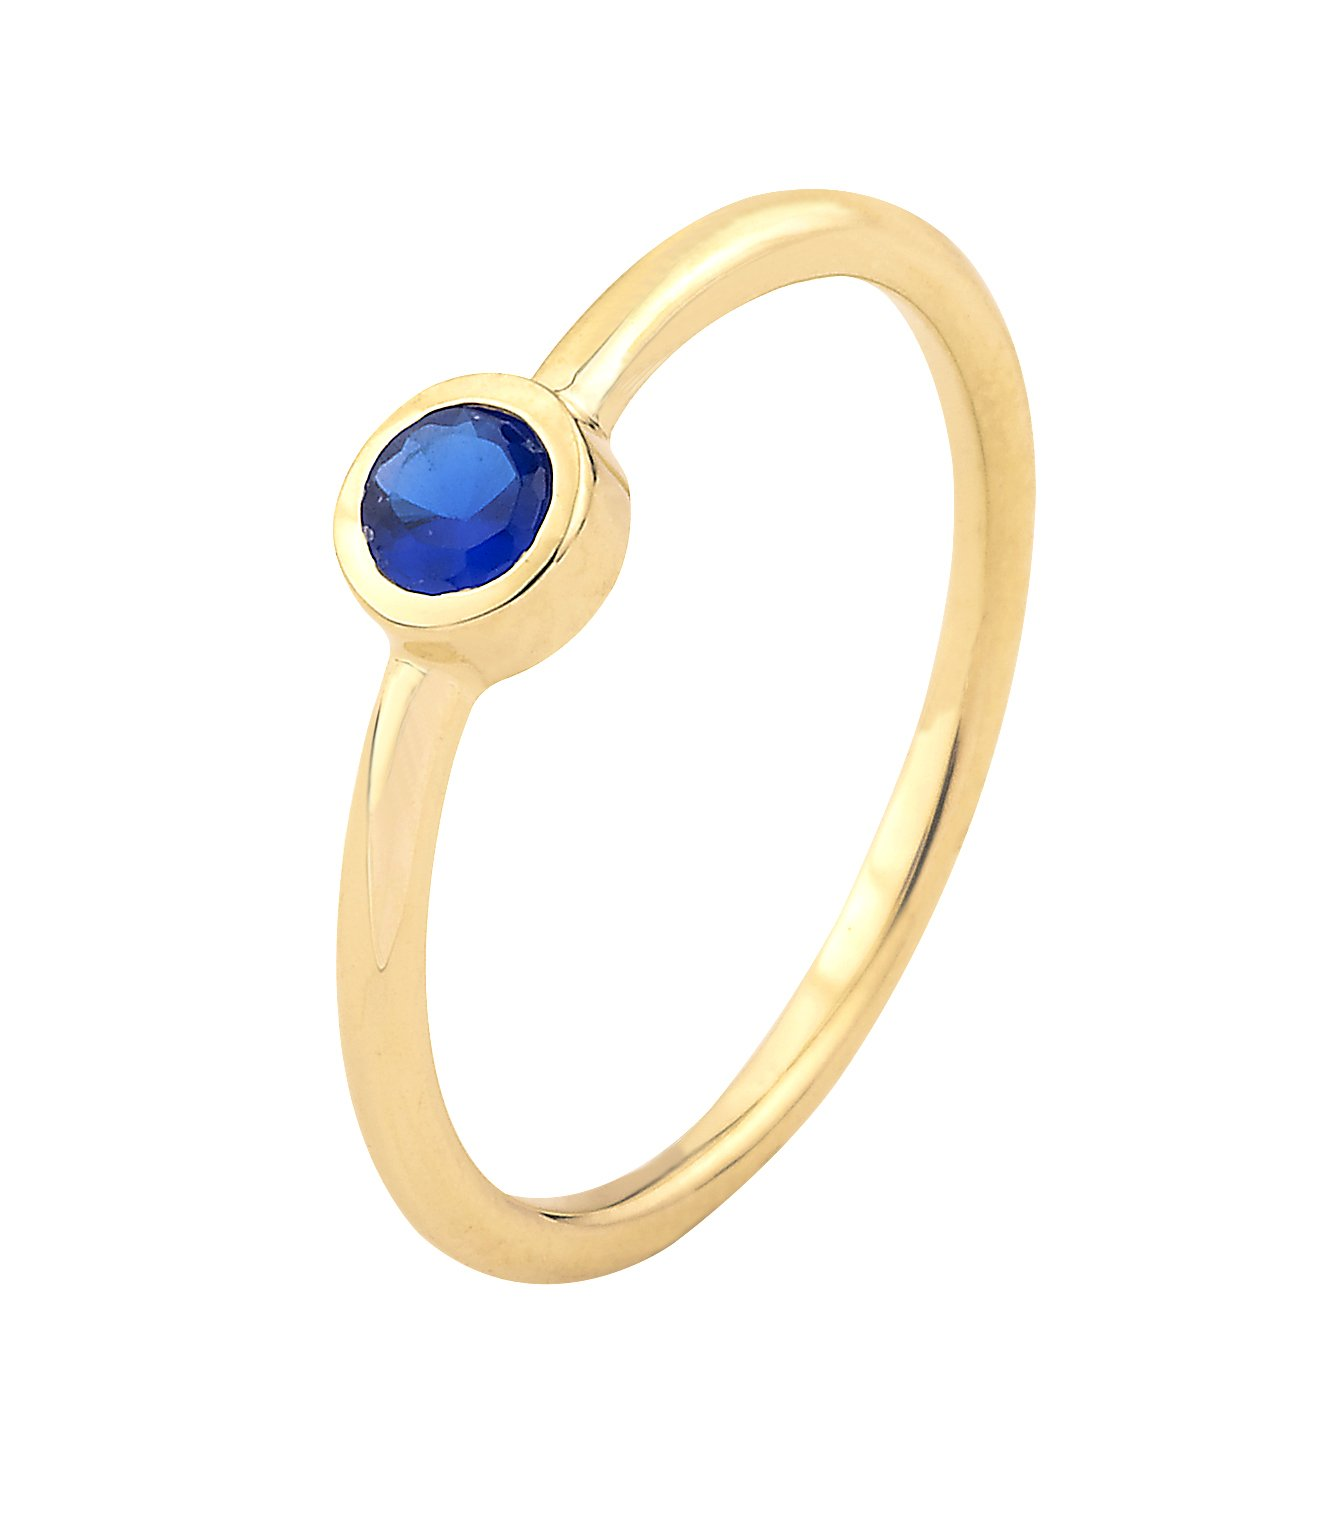 14k Yellow Gold Bezel Set Blue Cubic Zirconia September Birthstone Ring (7.5)